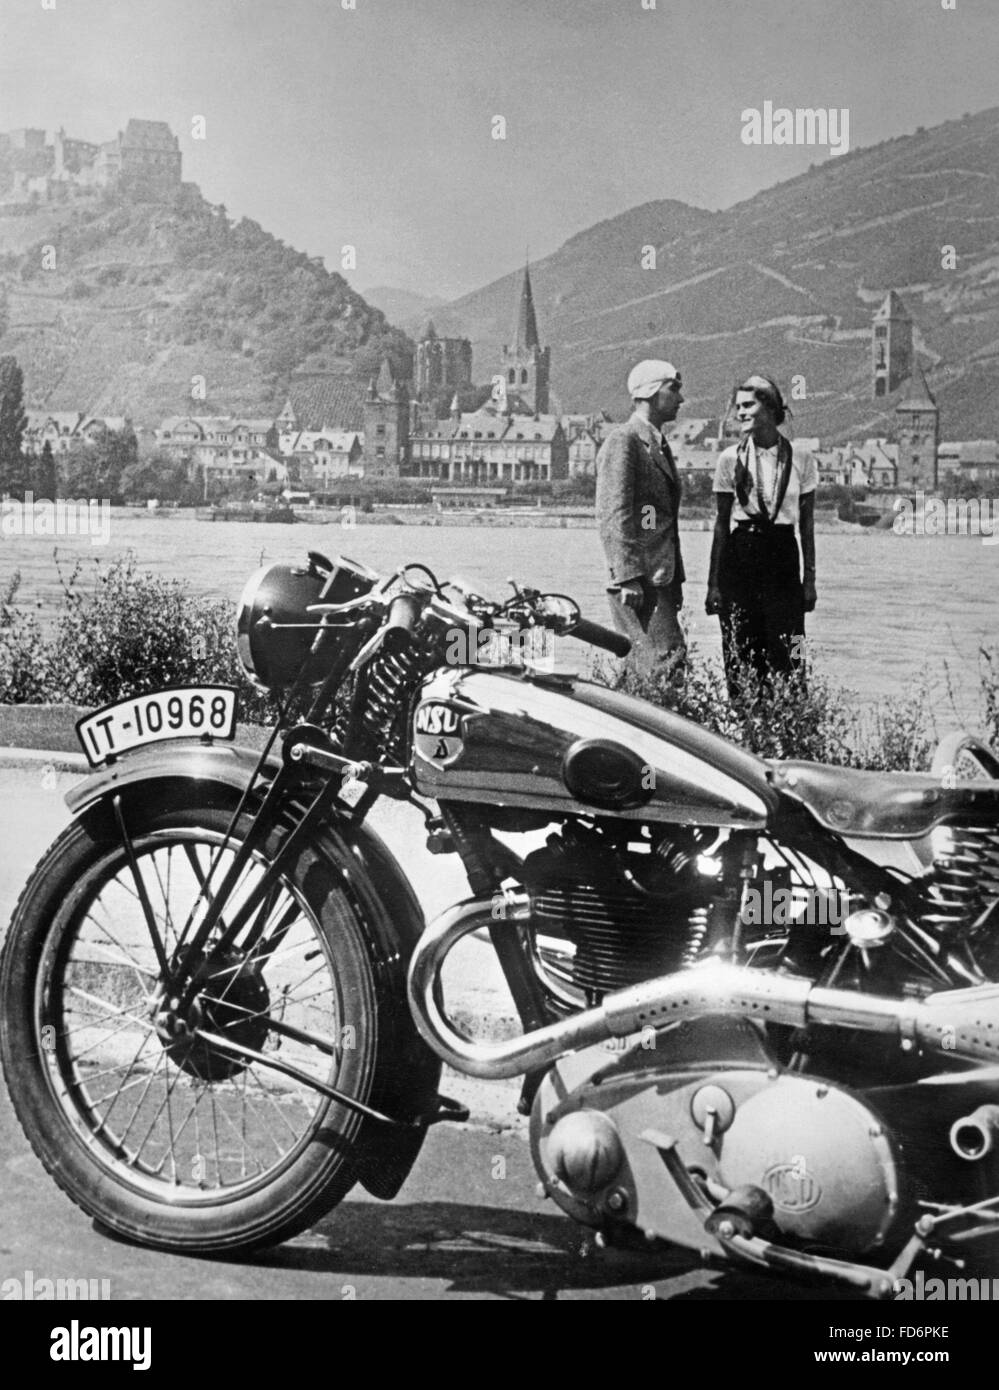 A motorcycle trip alongside the Rhein river, 1936 - Stock Image